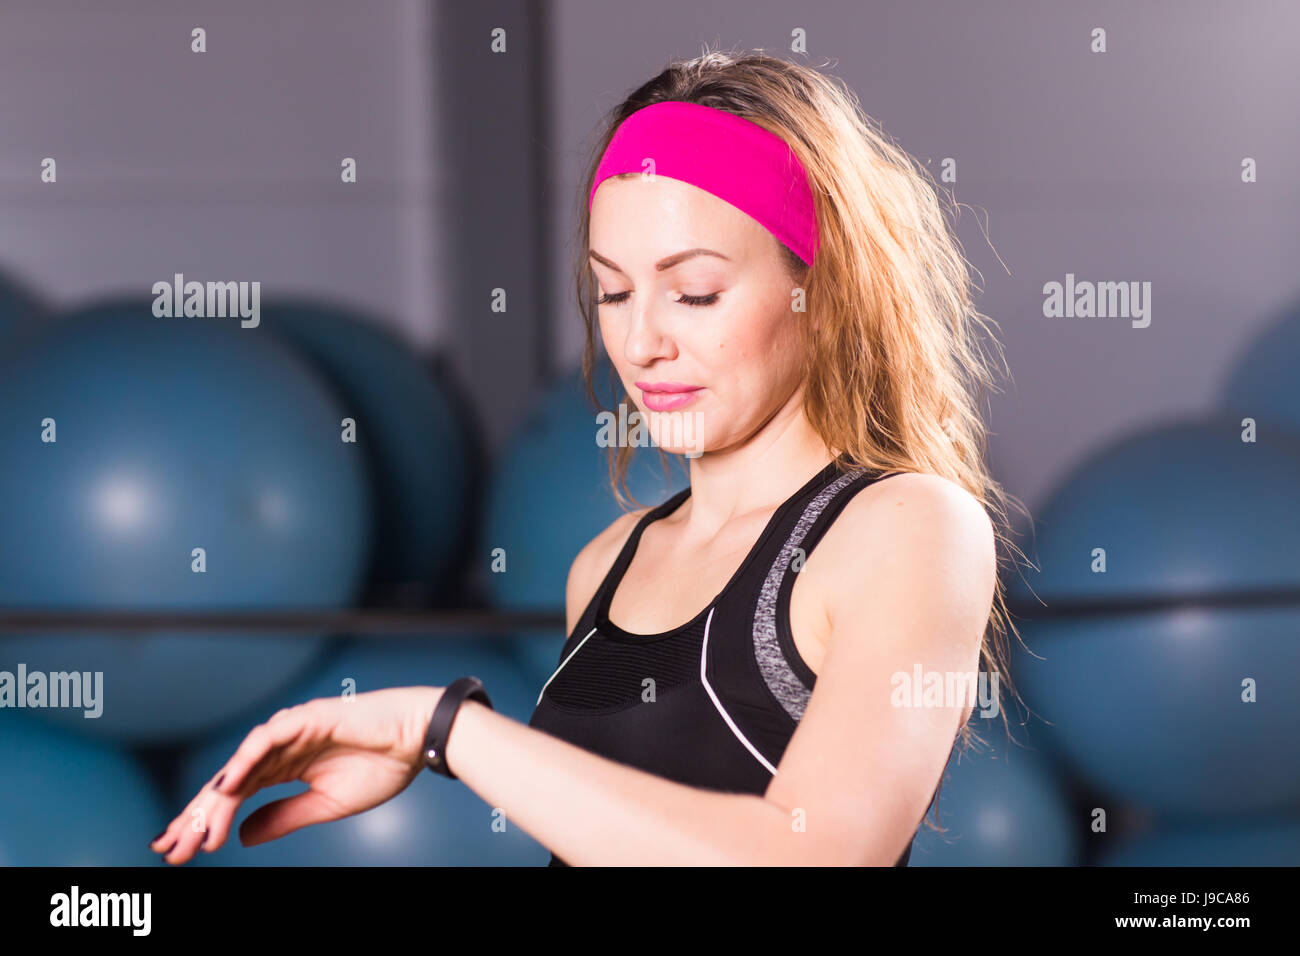 Young woman with fitness tracker and smartphone in gym - Stock Image